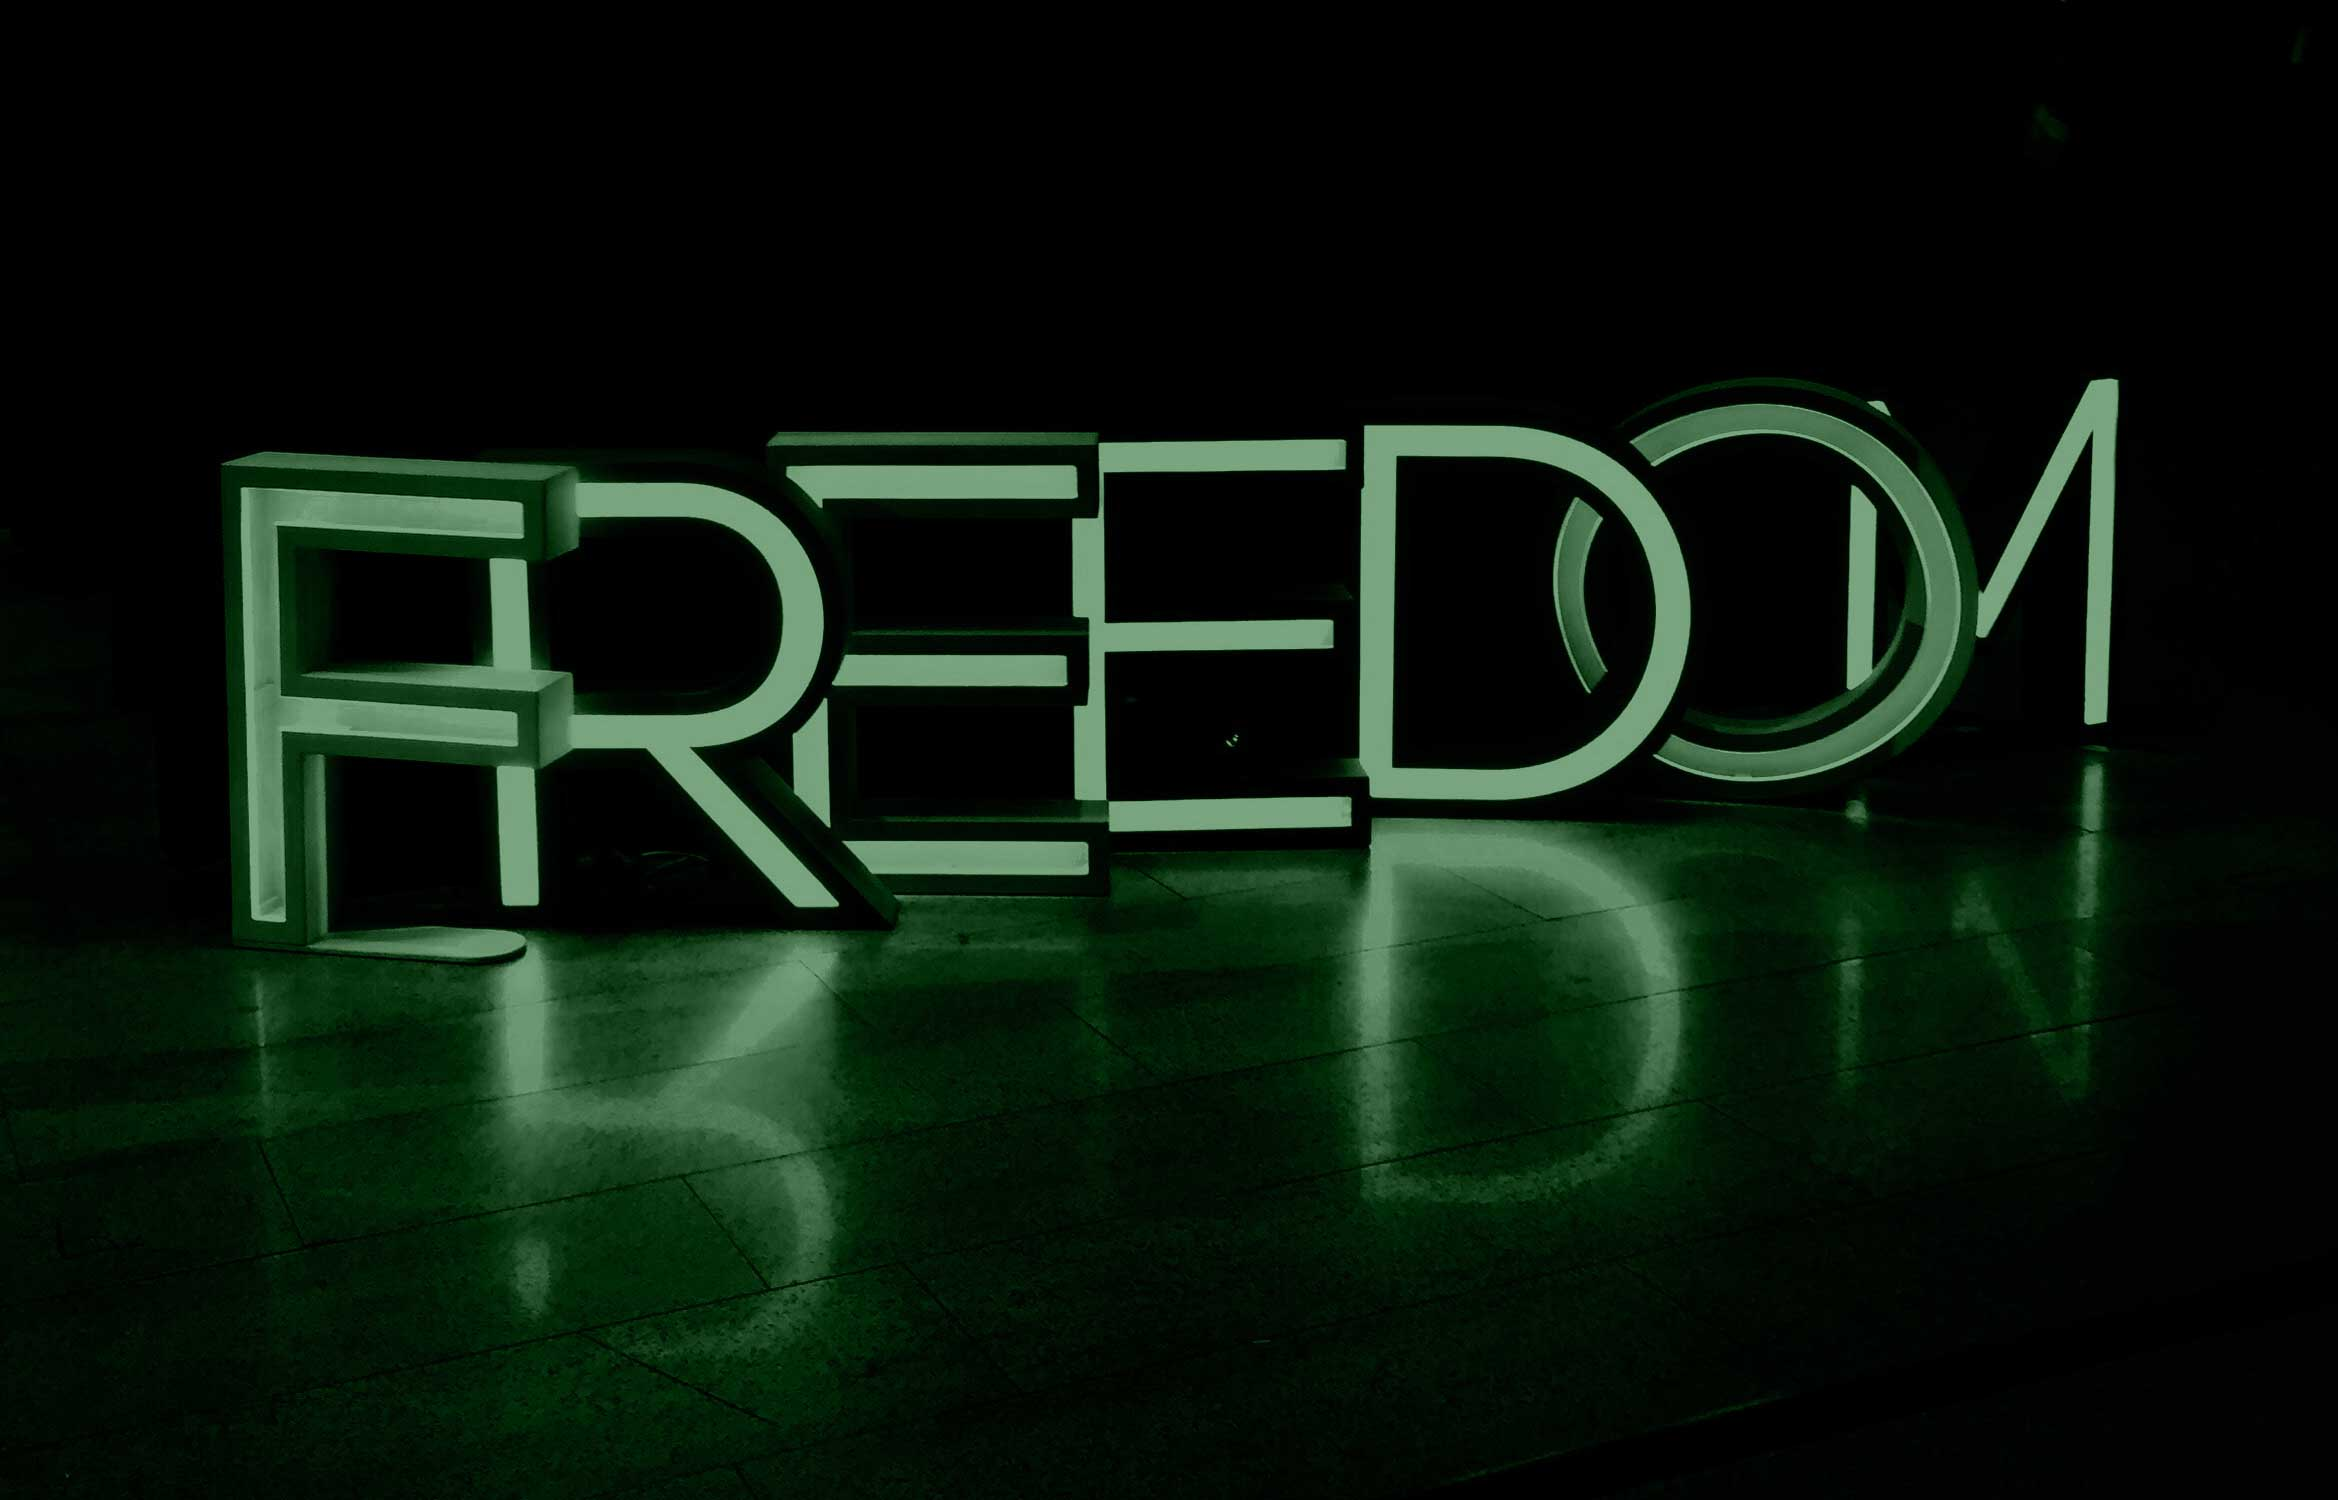 image of the word freedom to represent what it feels like to get out of debt